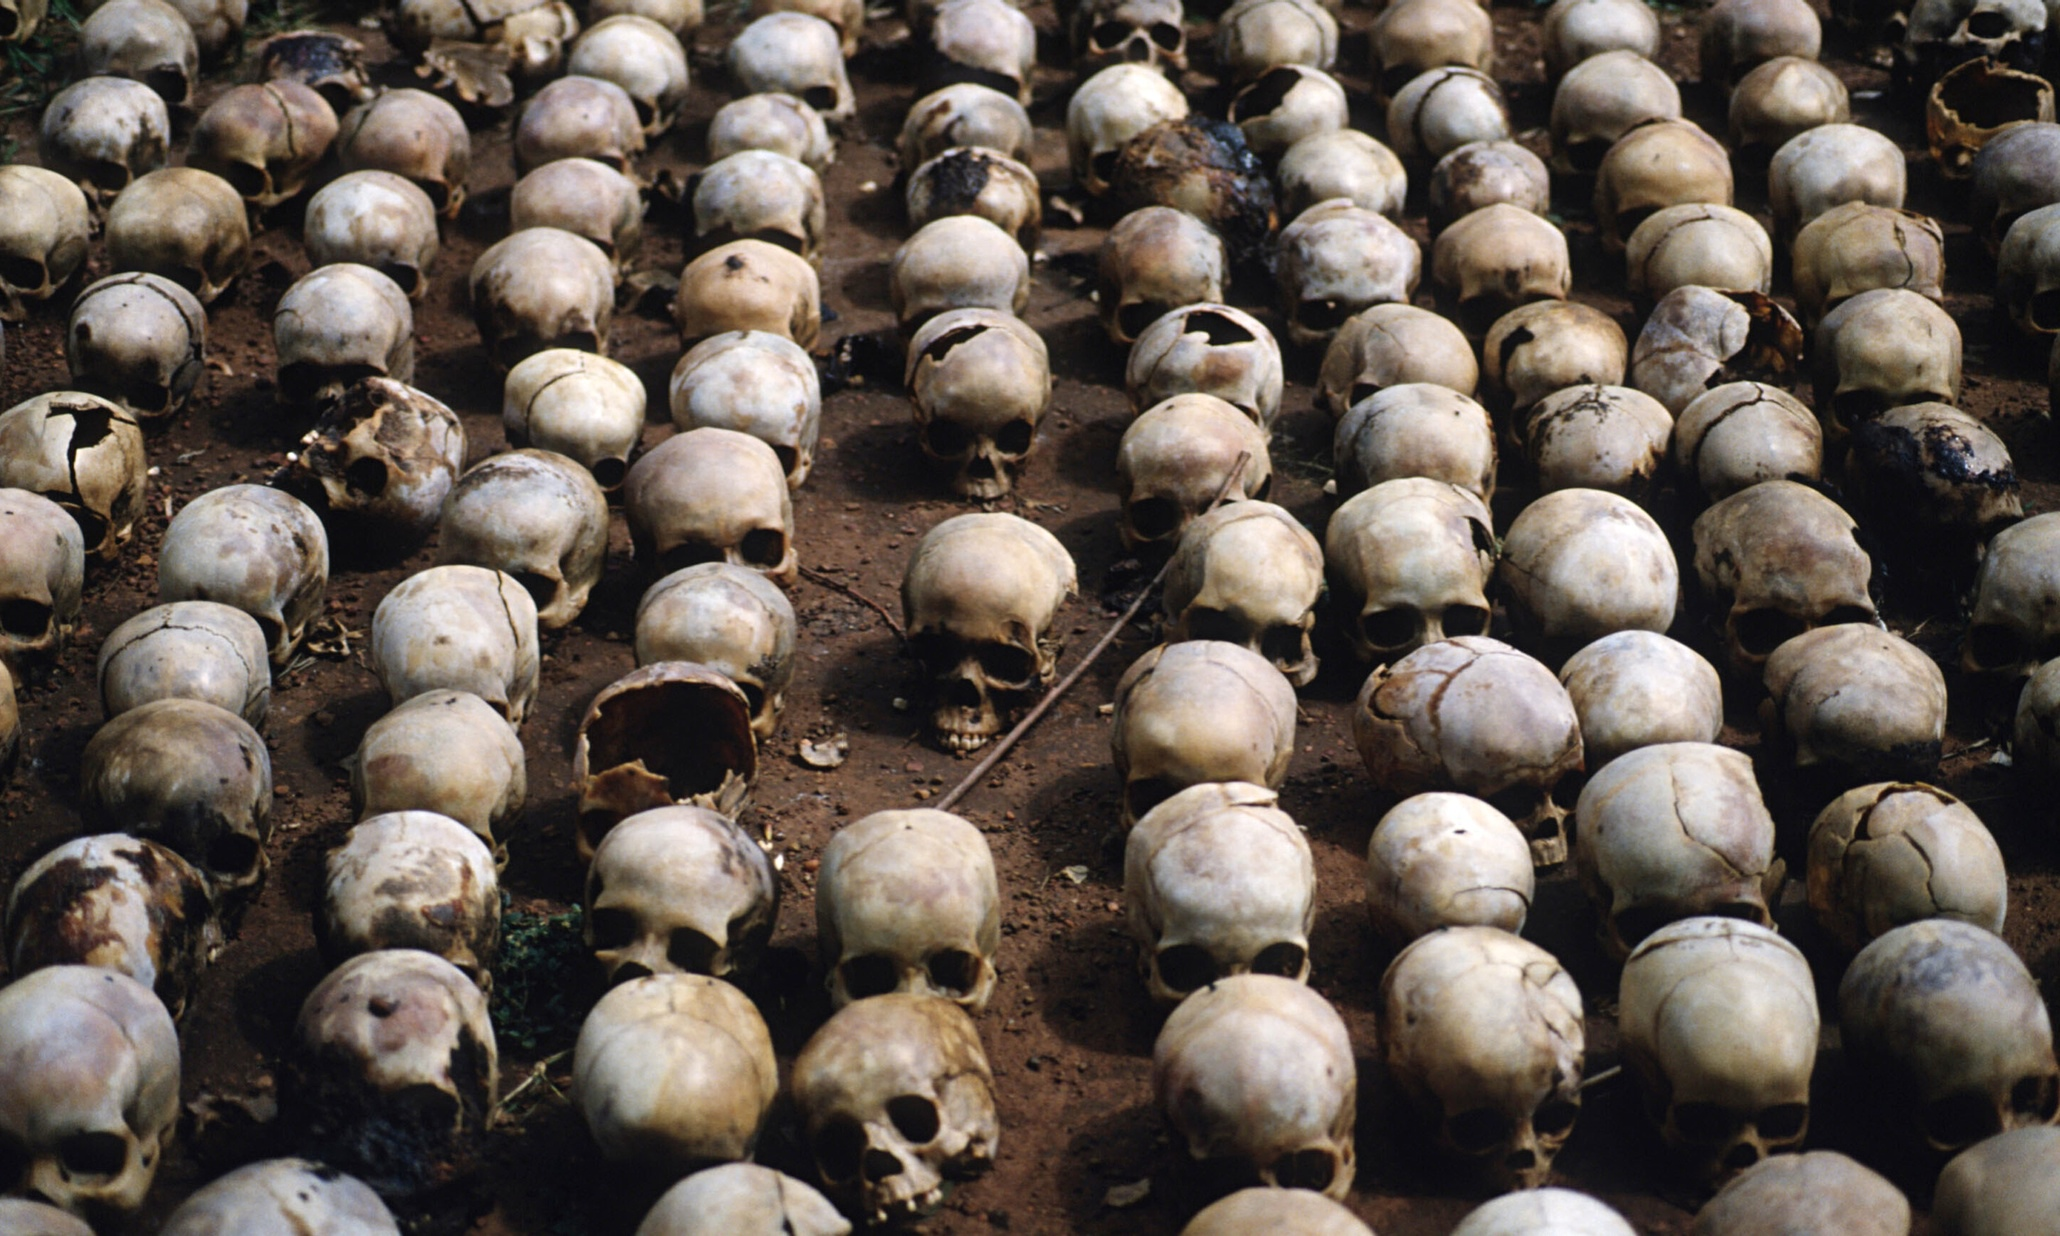 rwanda genocide who is to blame Chinaview: west is to blame for rwandan genocide in 1994: rwandan president rwandan president paul kagame on wednesday accused western countries of adopting an indifferent attitude toward.